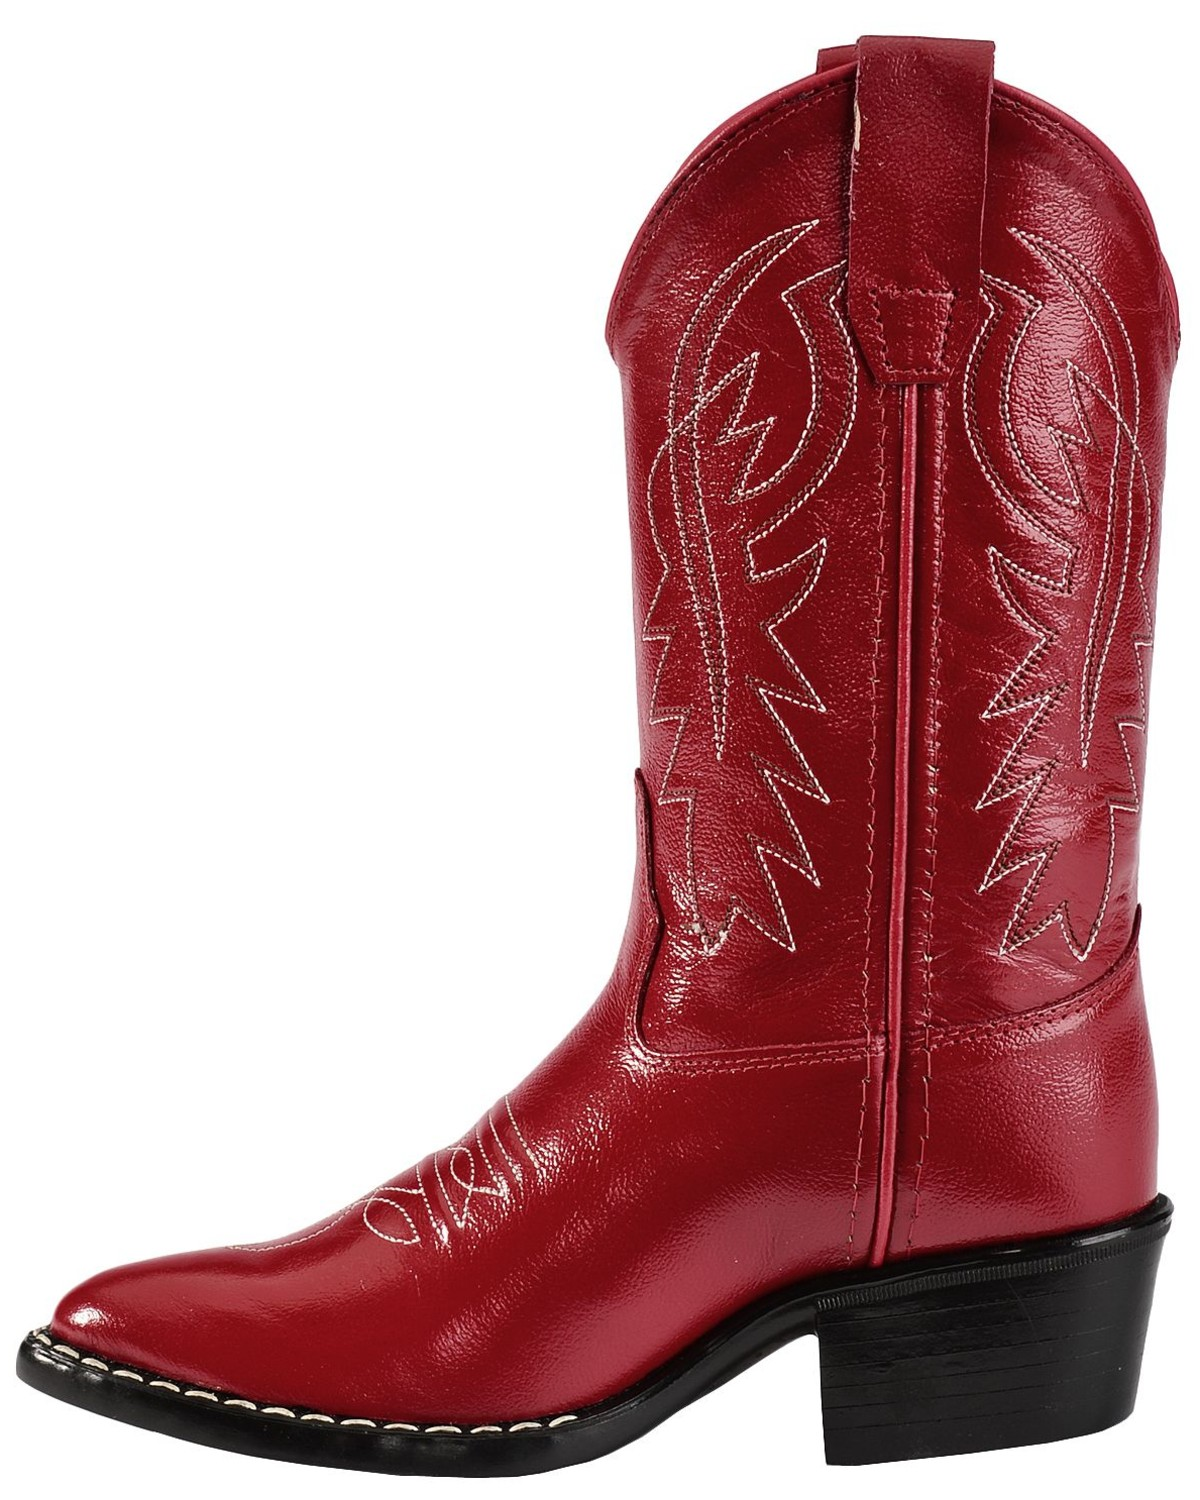 Old West Girls' Red Leather Cowgirl Boots | Sheplers